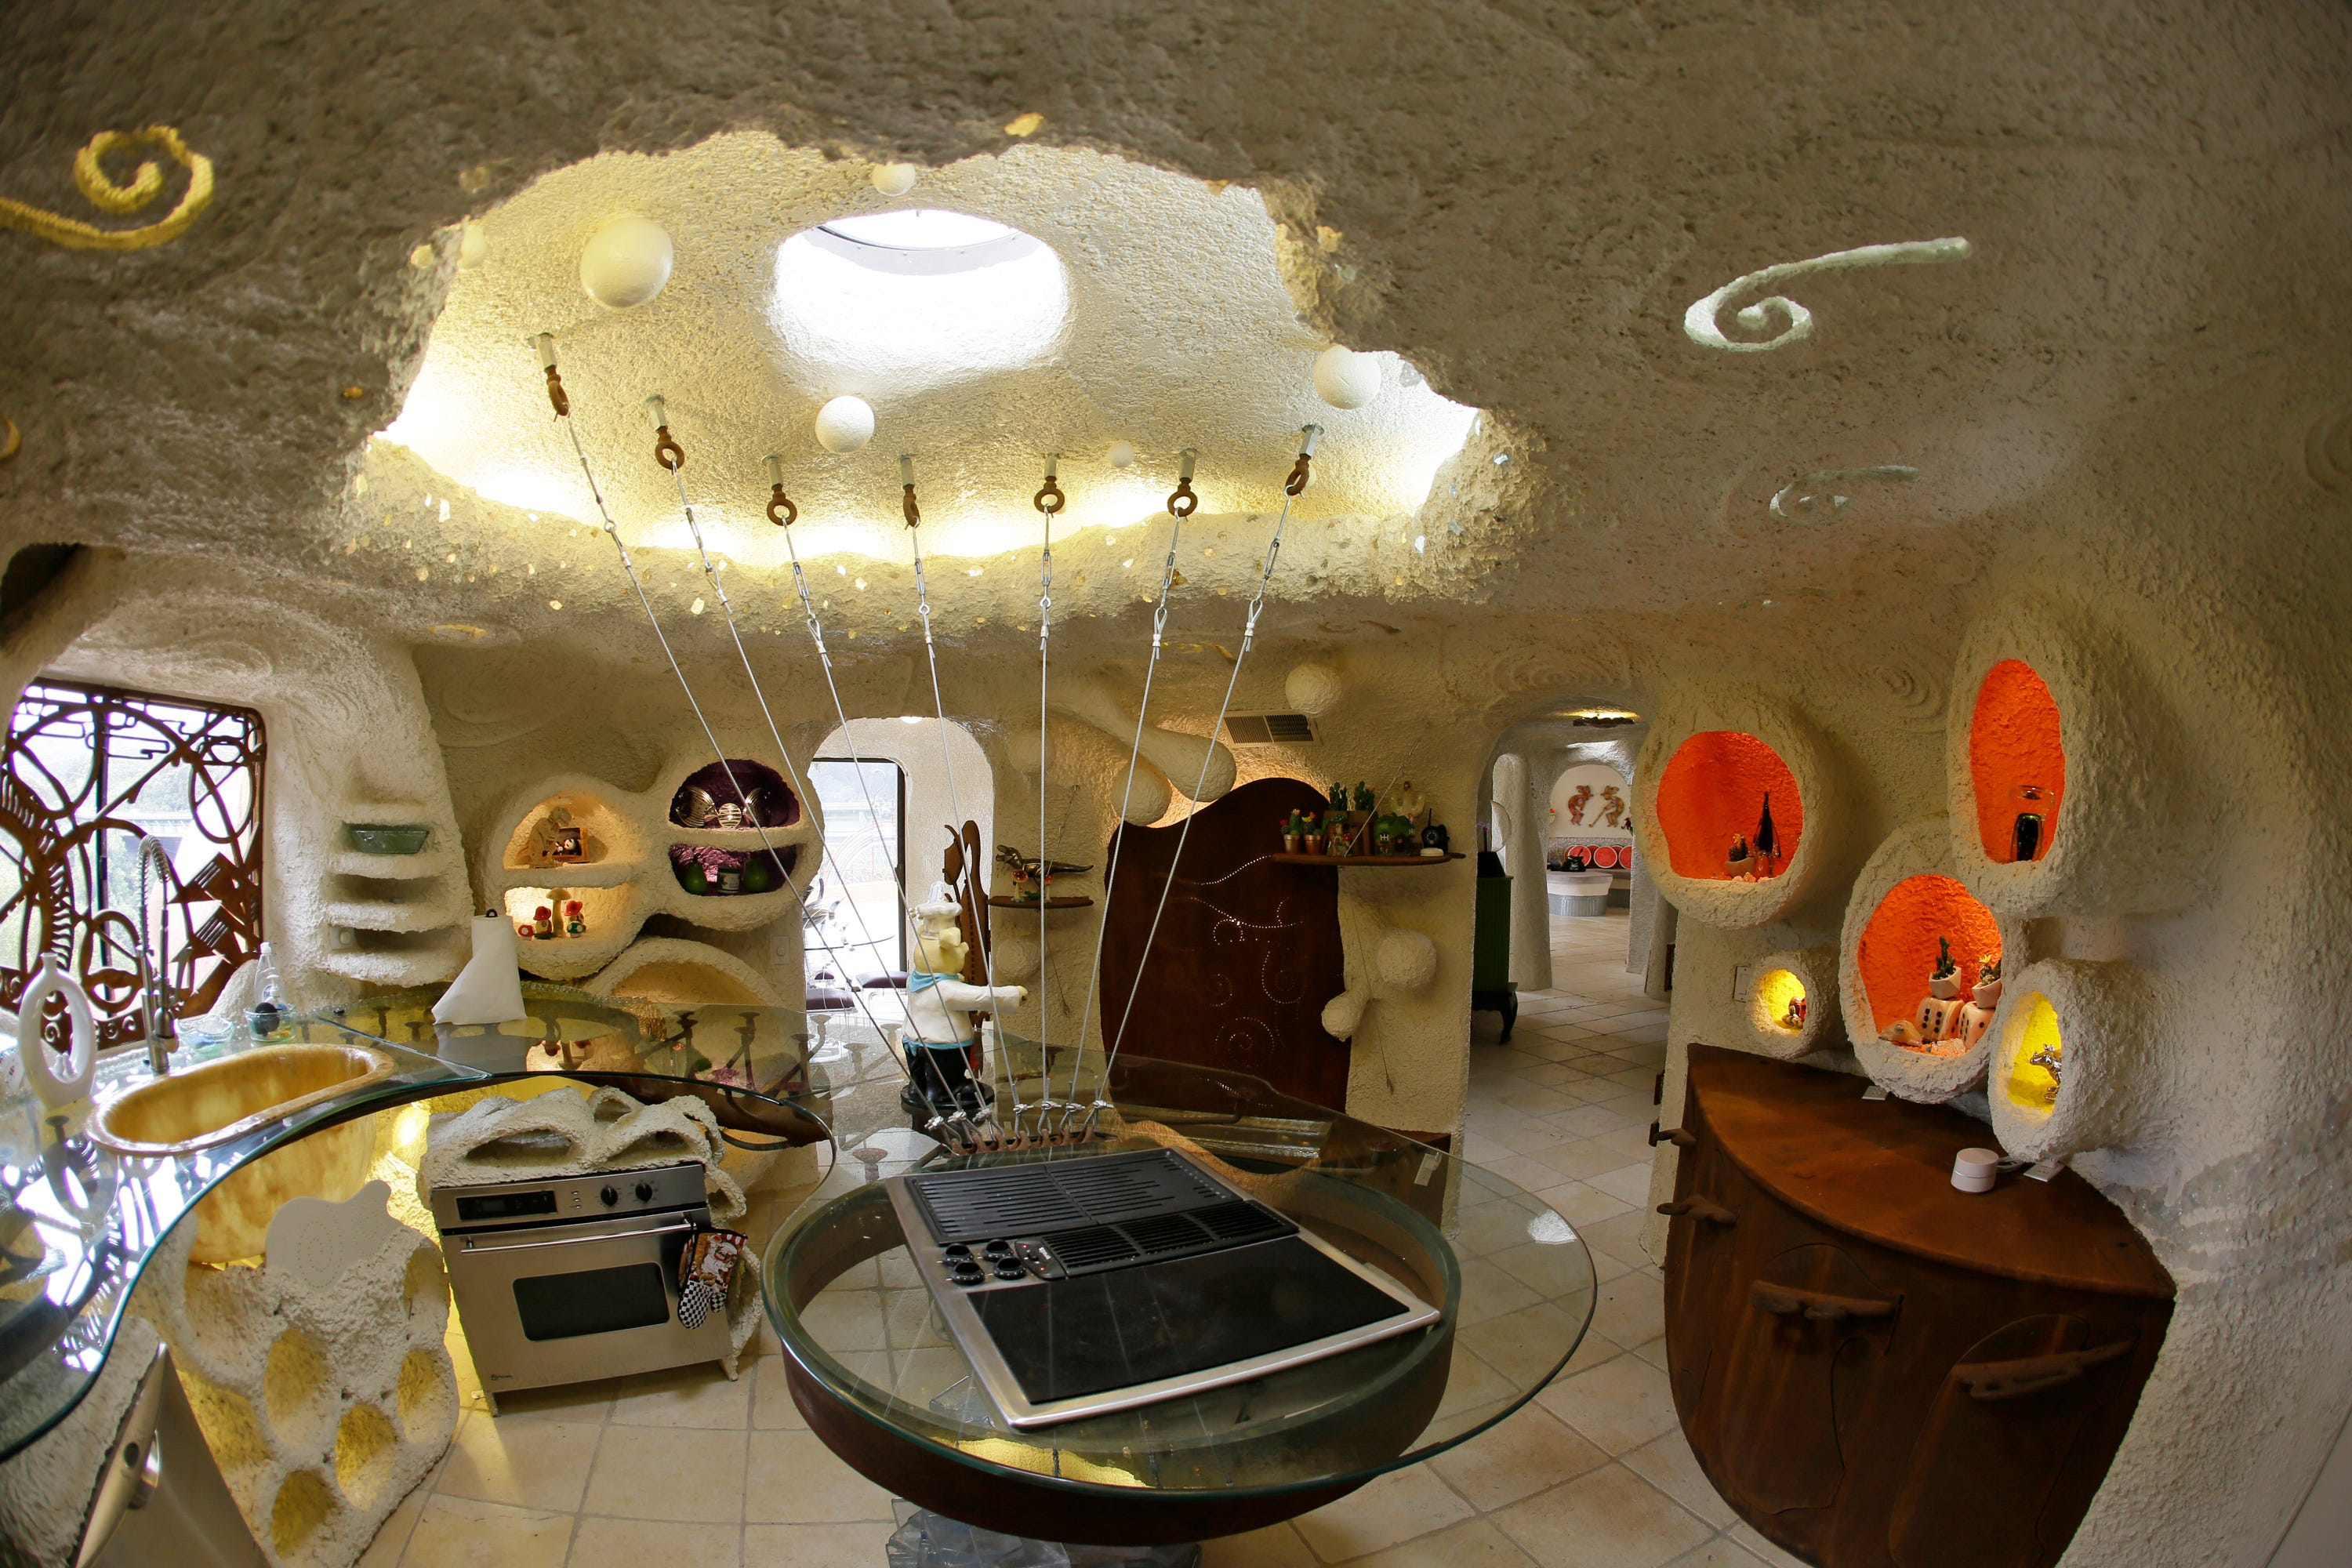 A view of the kitchen inside the Flintstone House in Hillsborough, Calif.